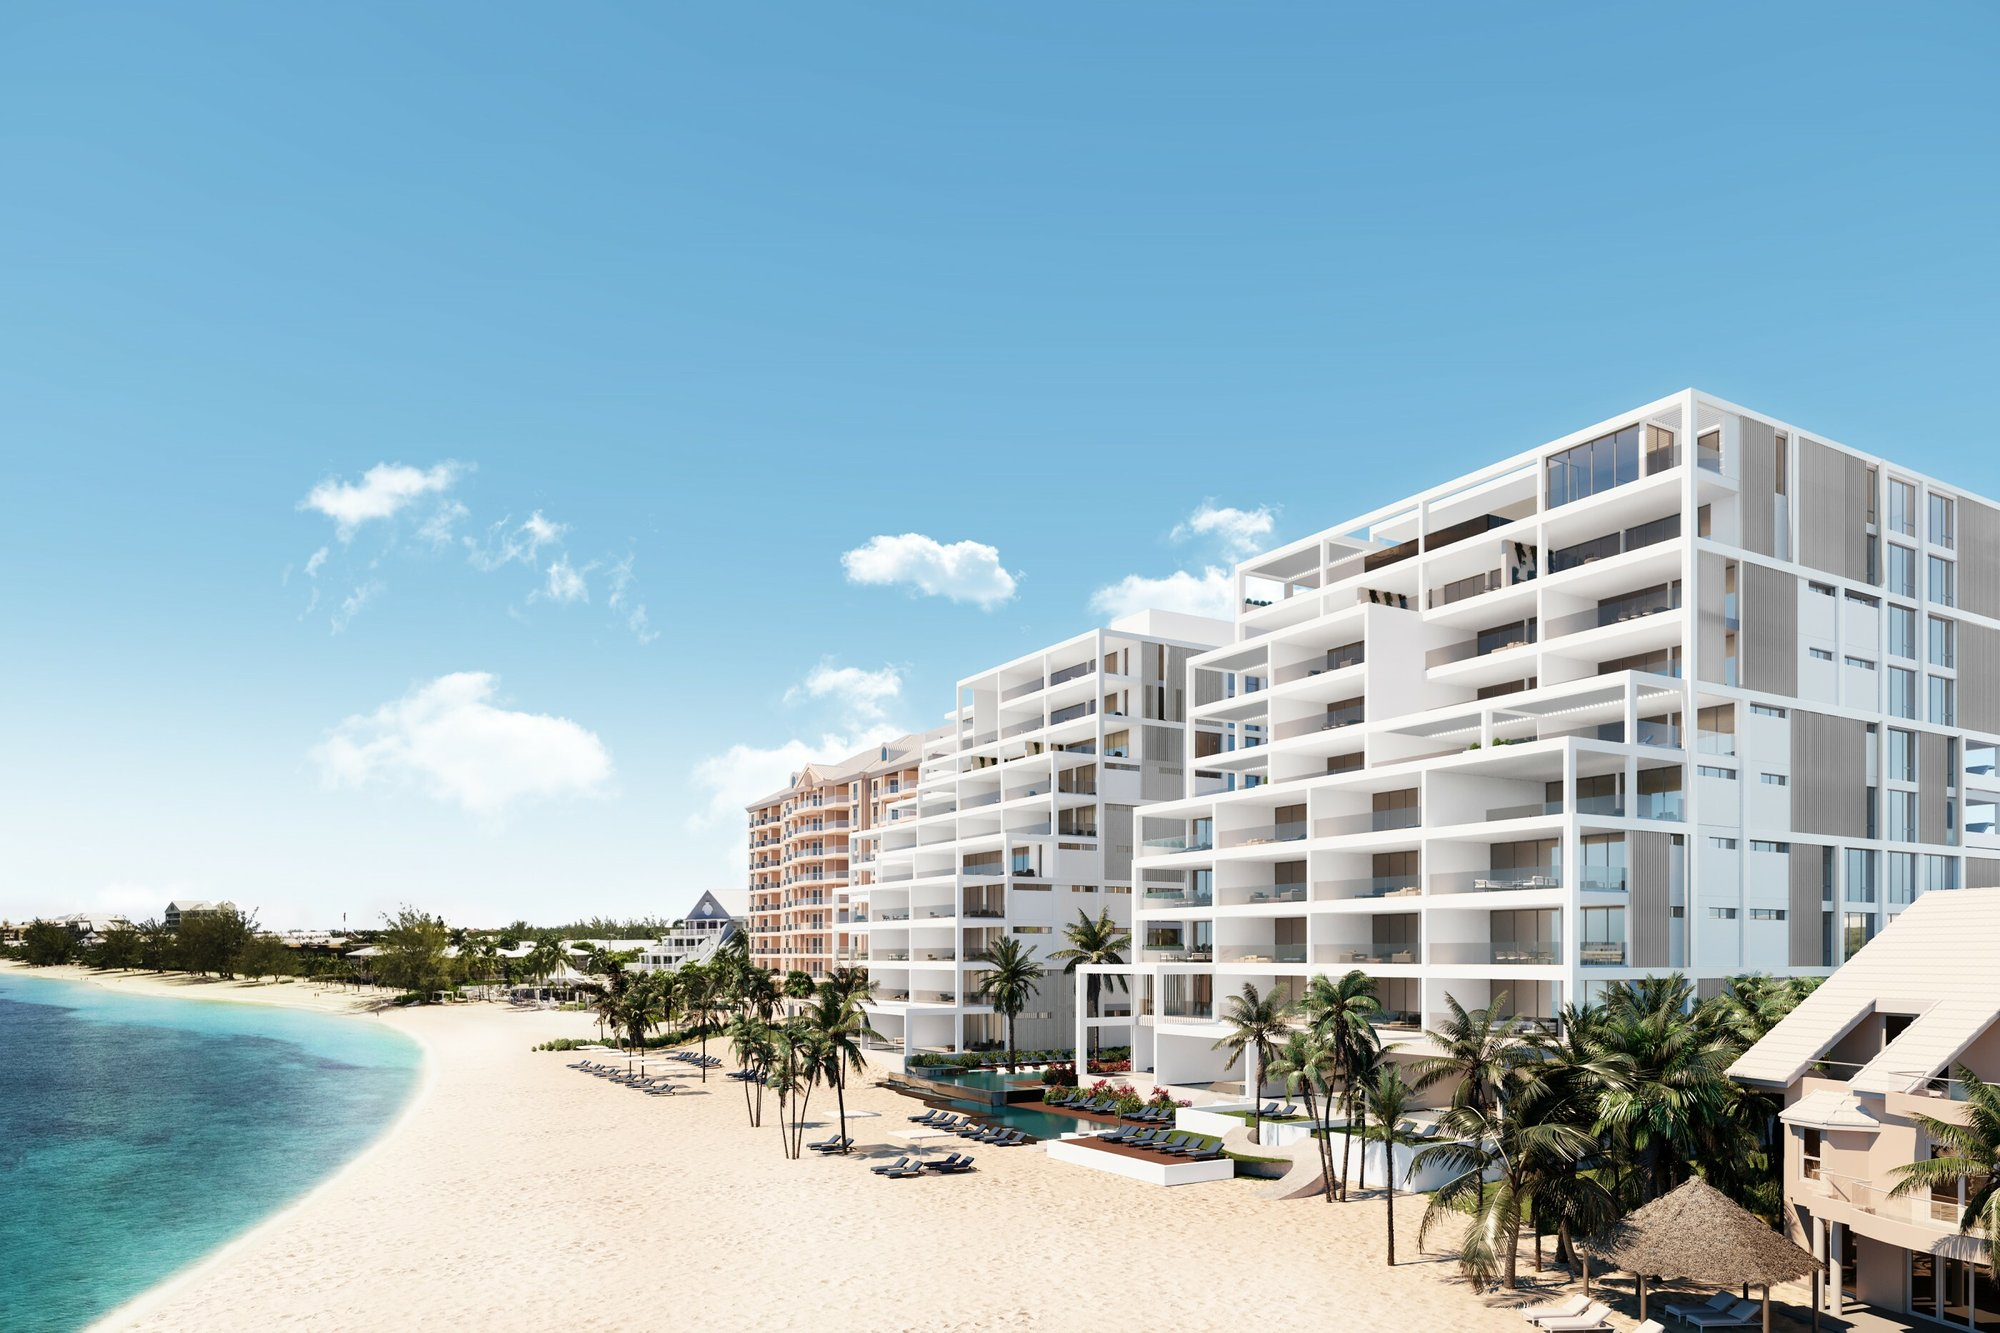 Apartment in George Town, George Town, Cayman Islands 1 - 11568313